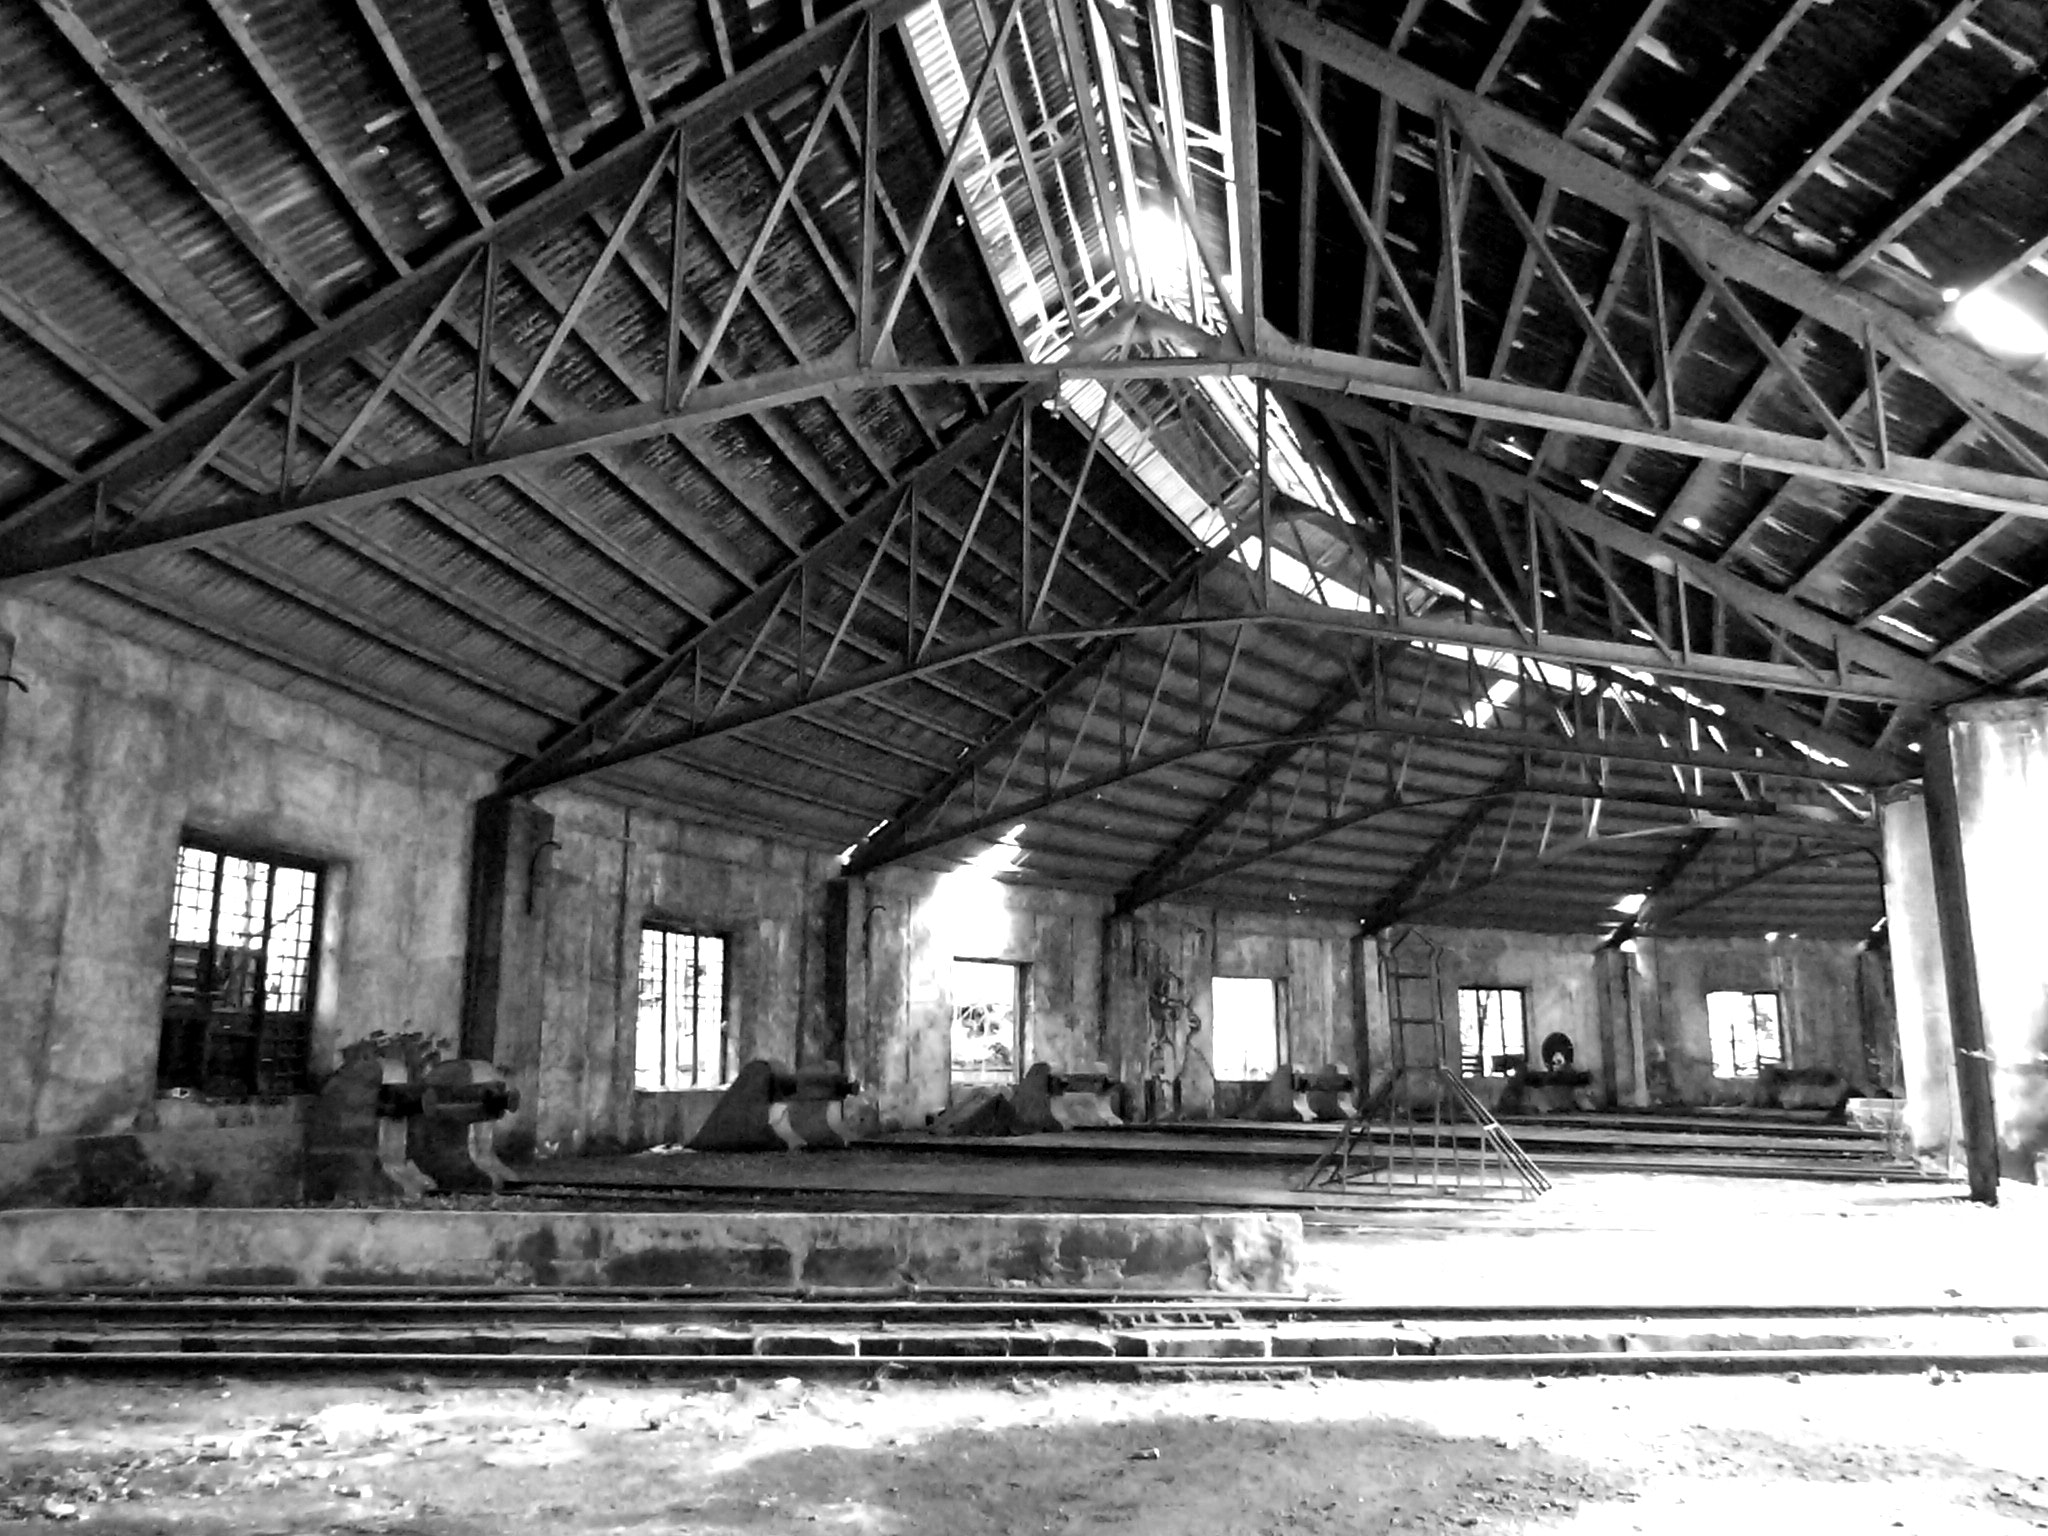 Photograph inside an abandoned railway station by Florence Guichard on 500px